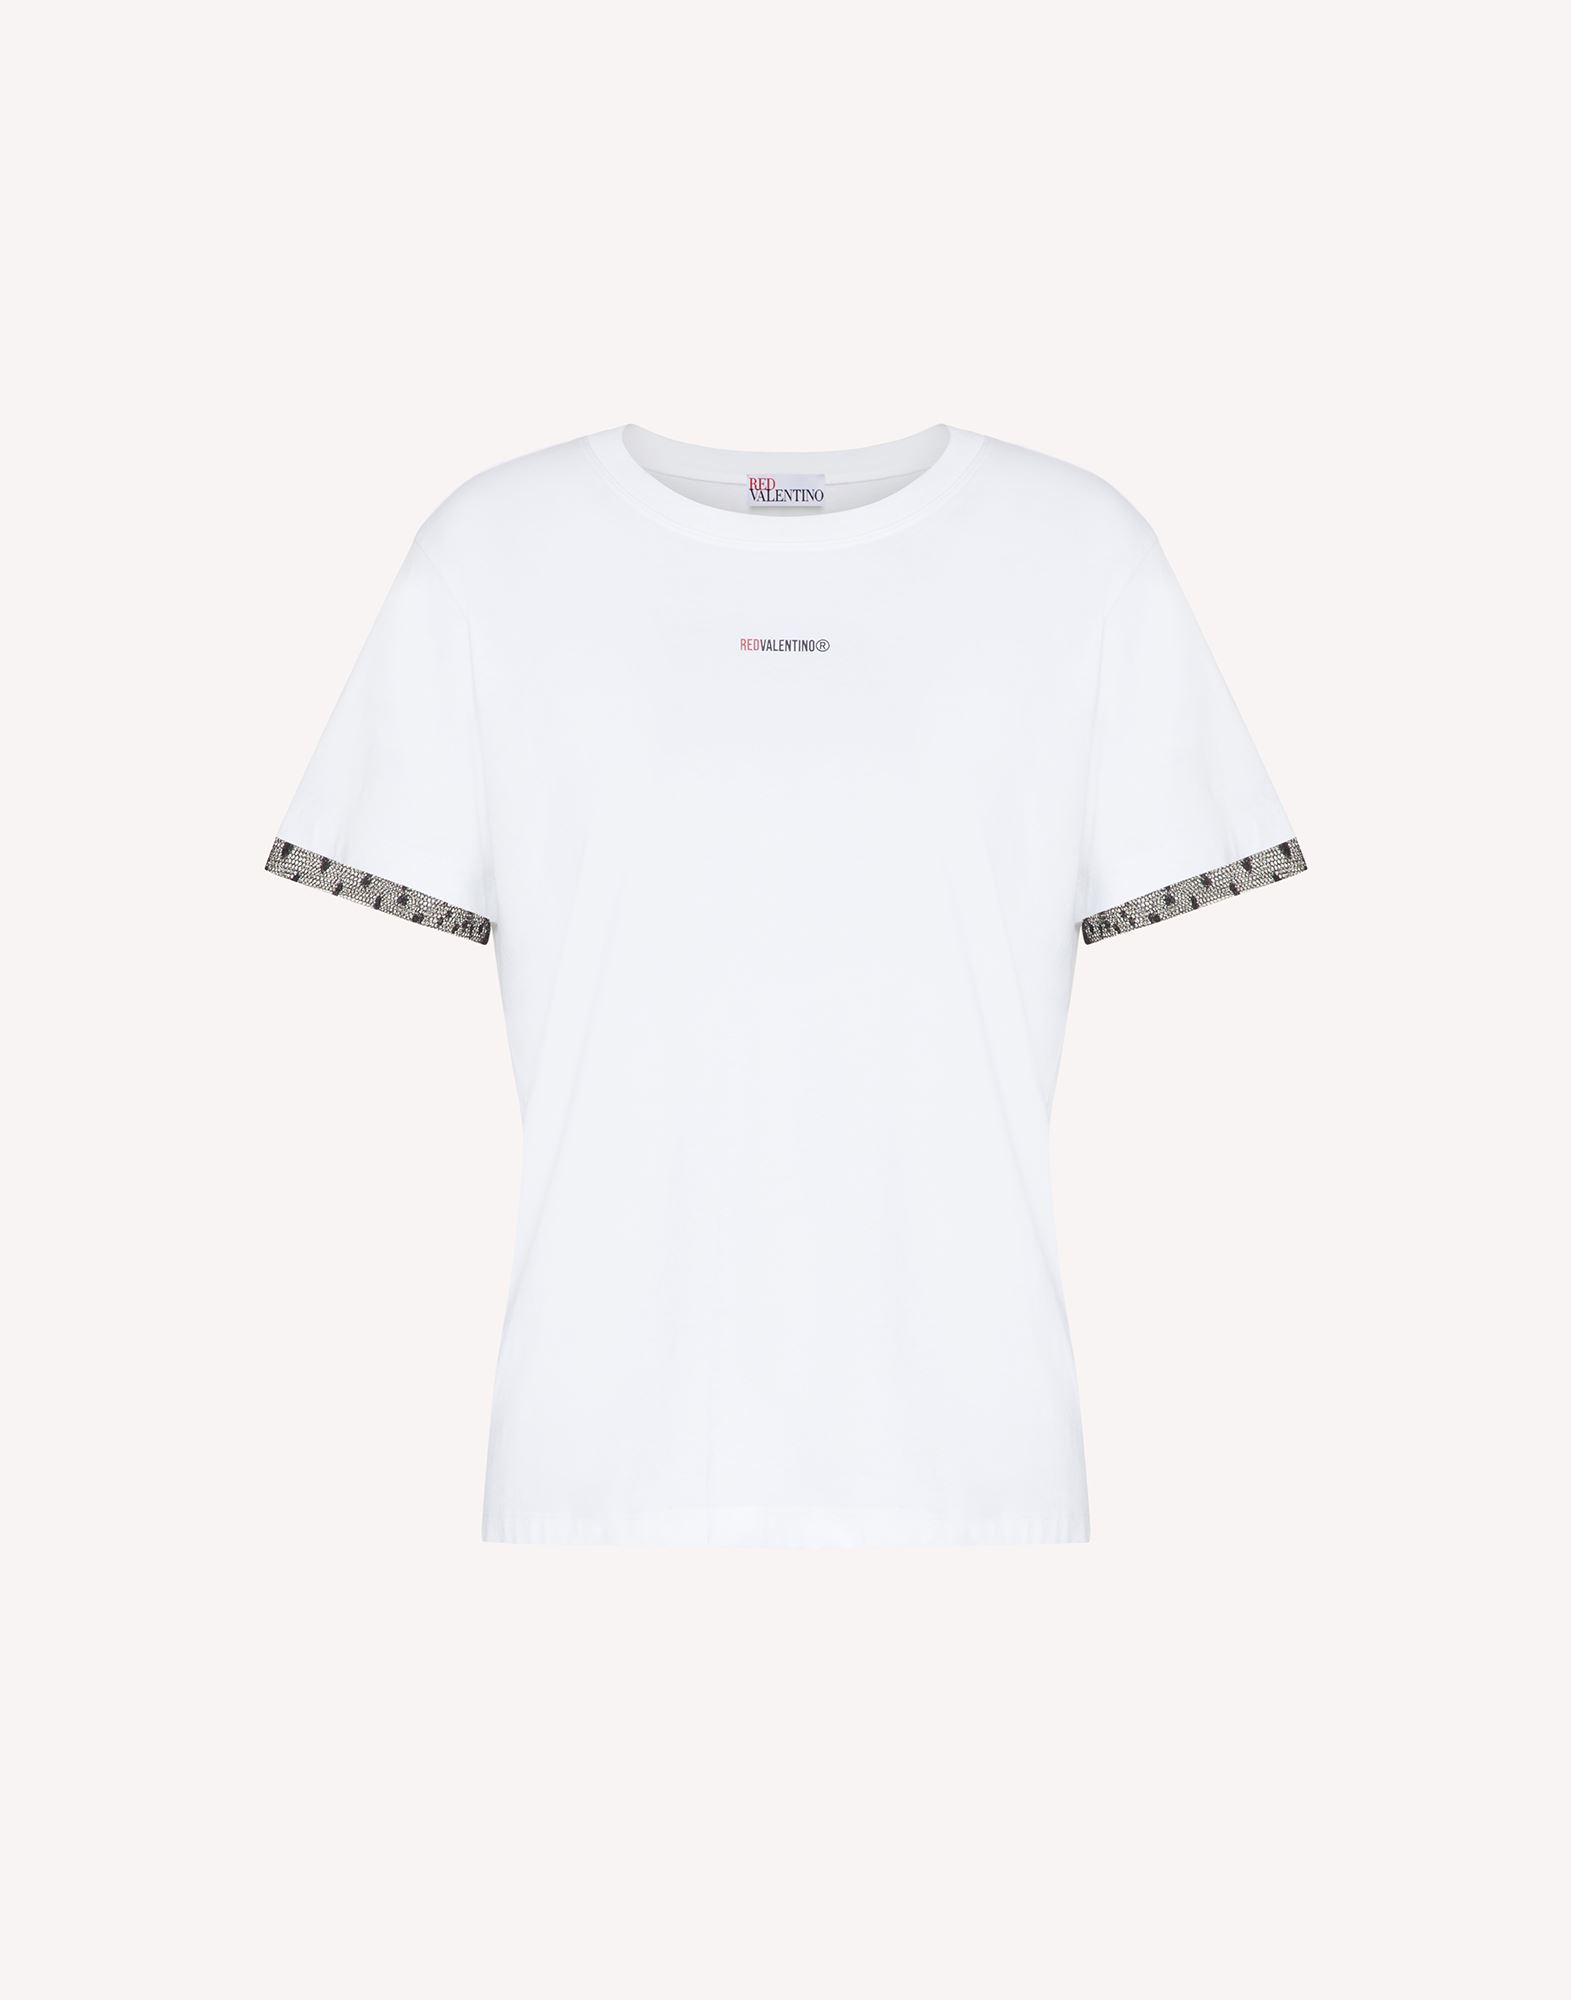 t-shirt red valentino הולצה